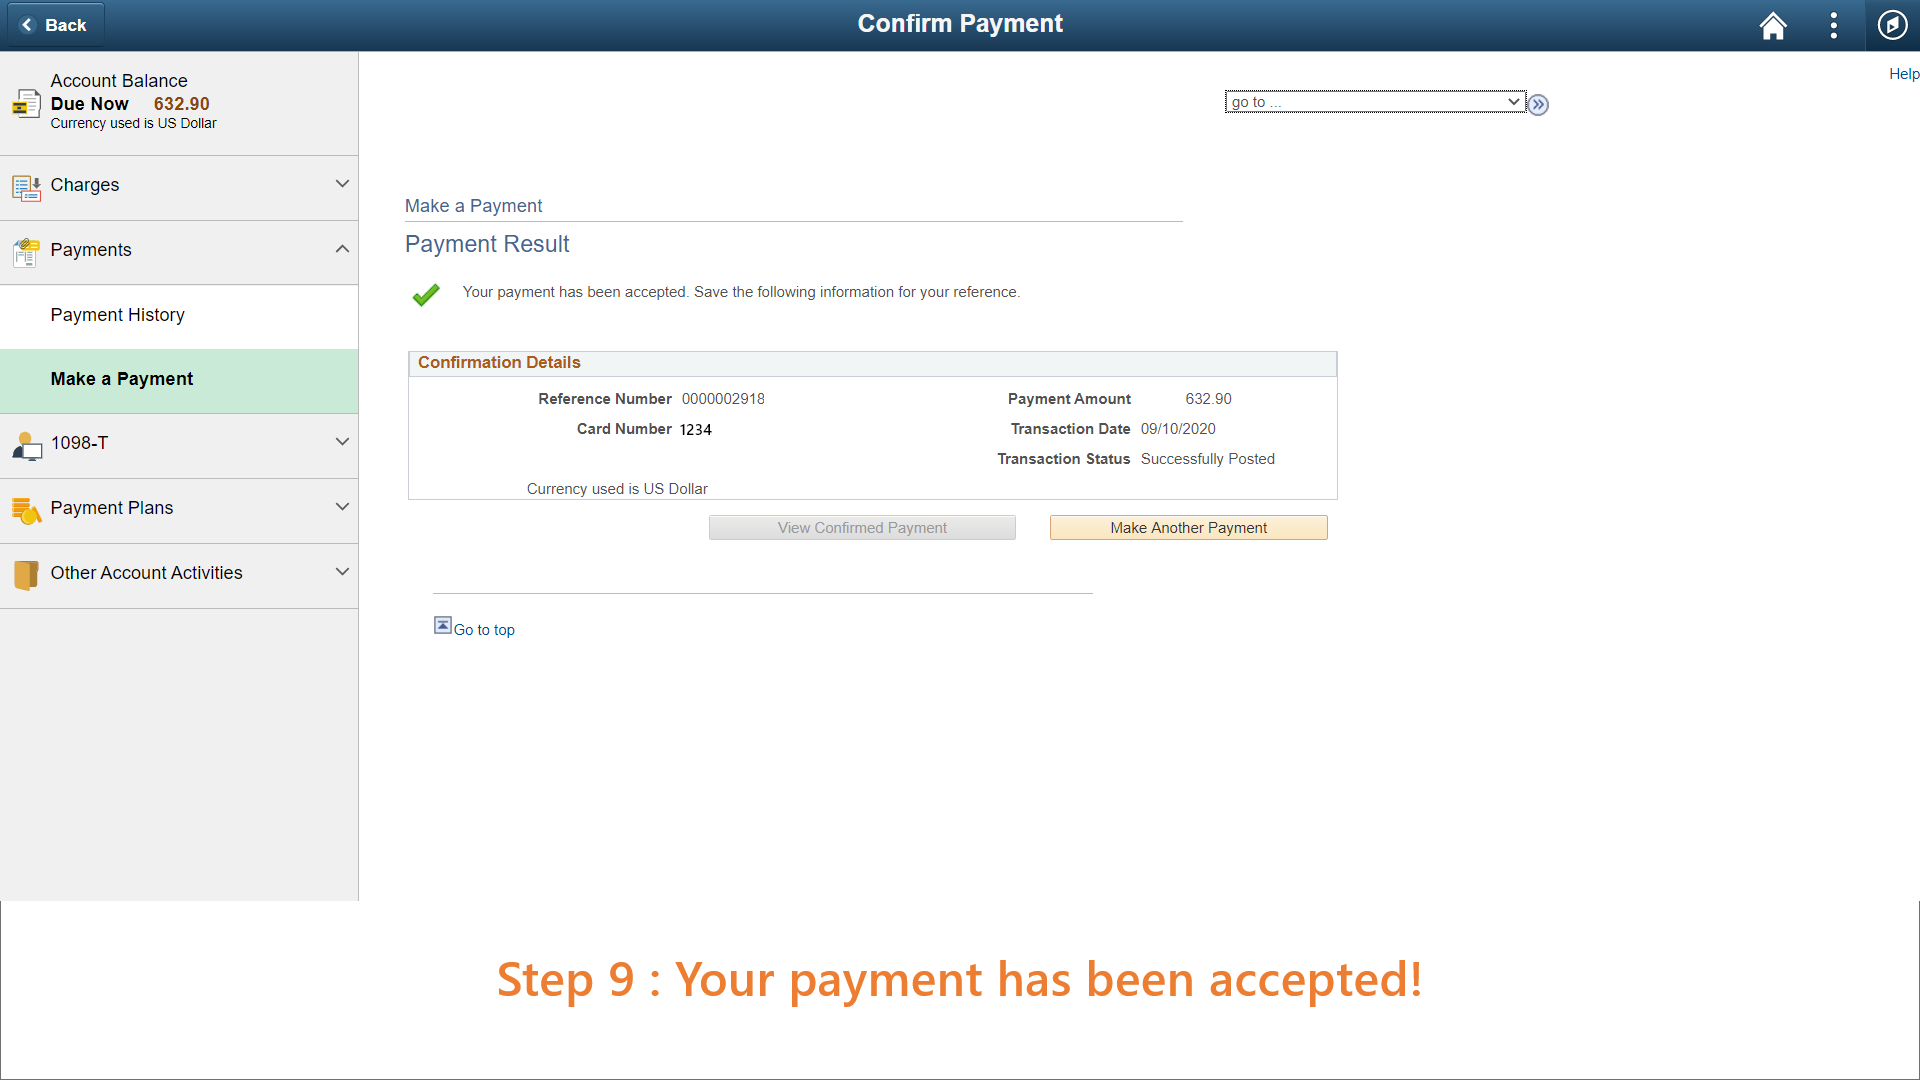 Step 9: Your payment has been processed.